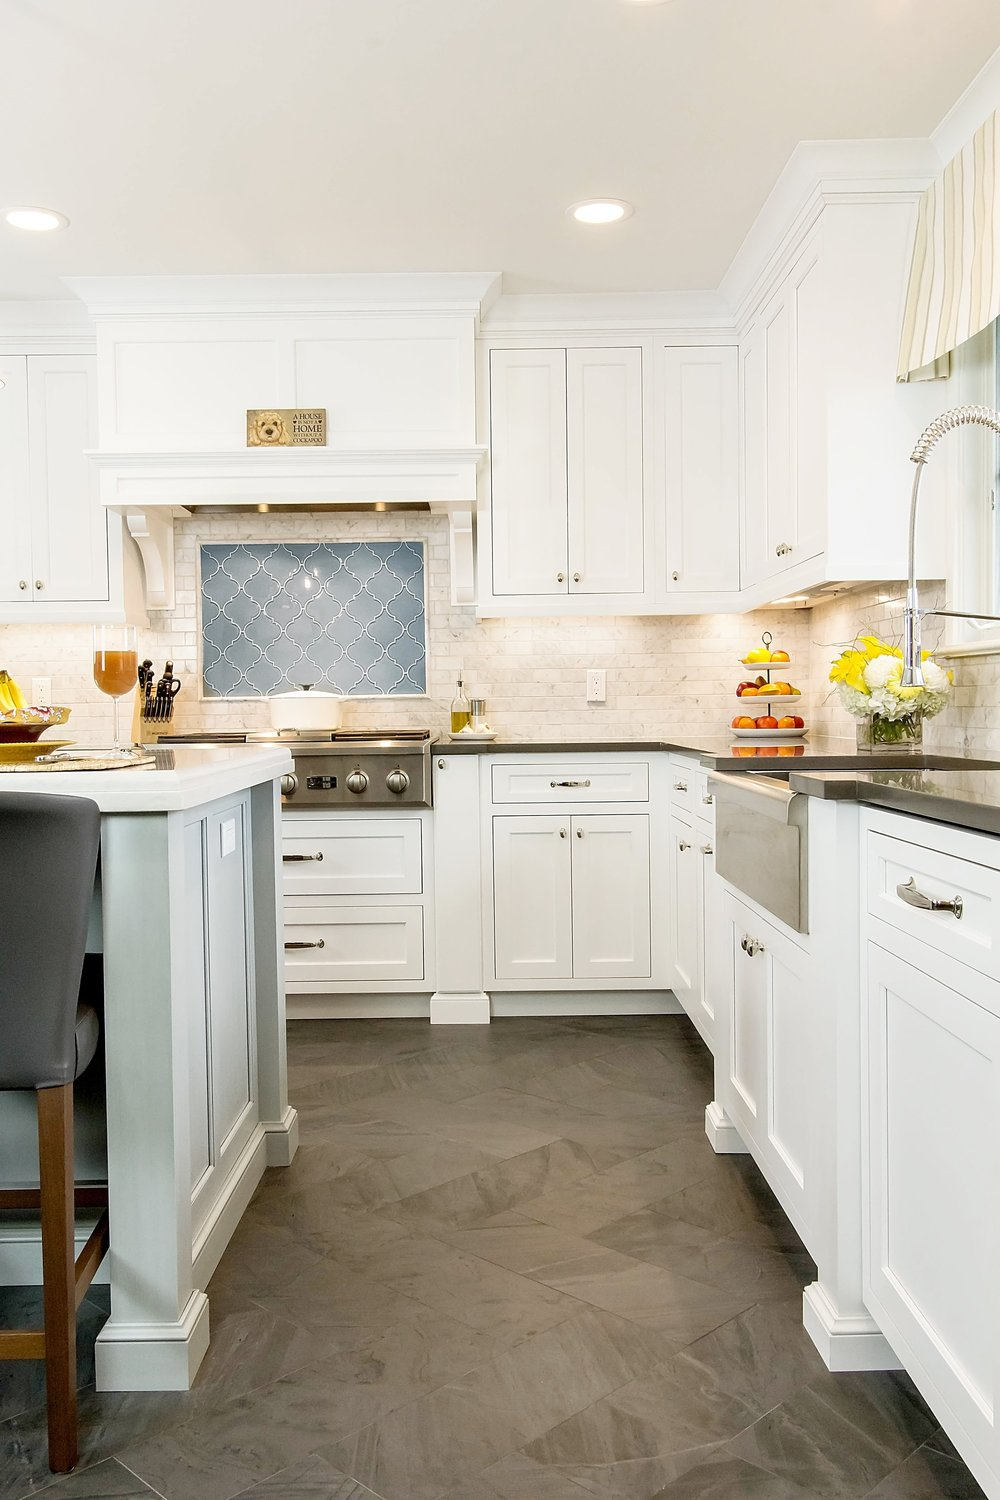 Traditional style kitchen with upper cabinets at the corner